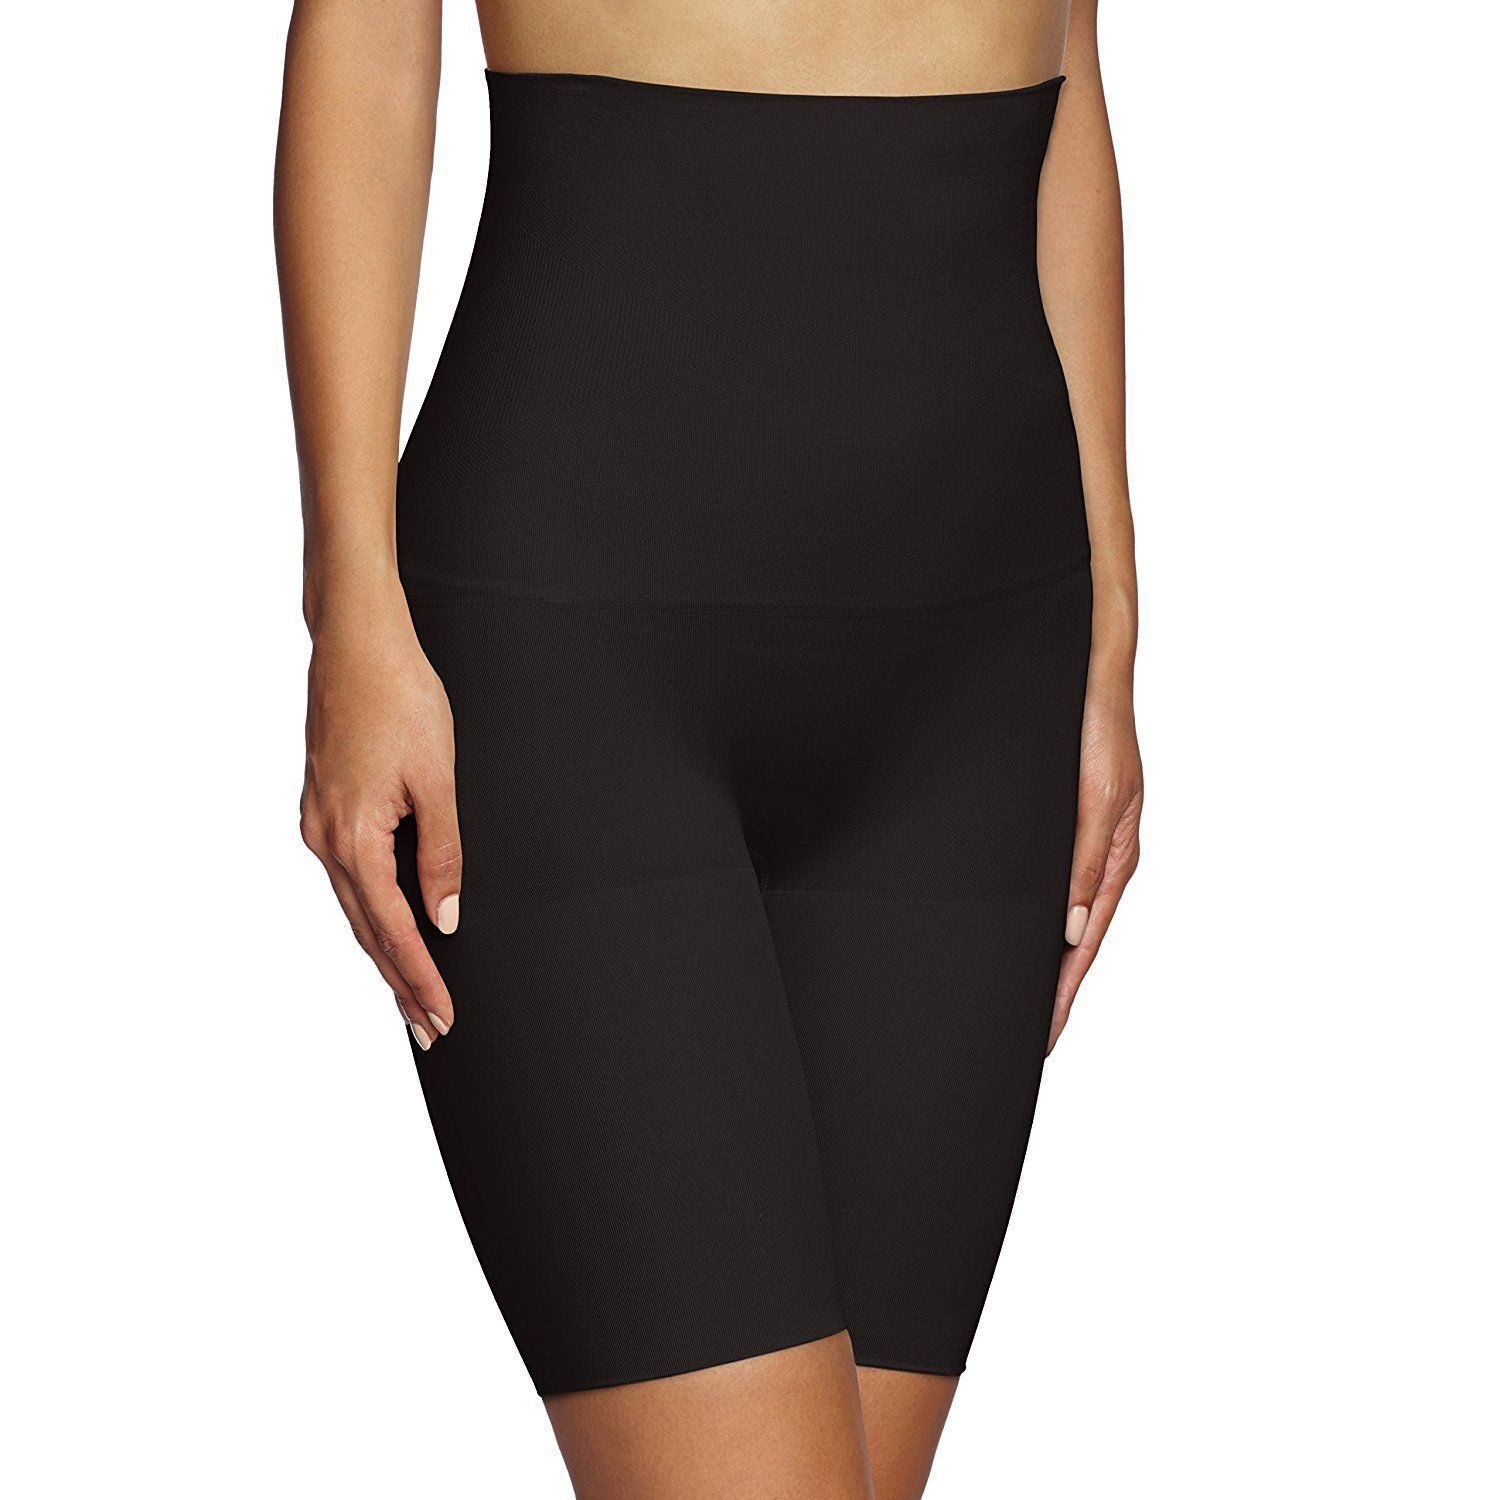 TC Plus Size High Waisted Thigh Slimmer